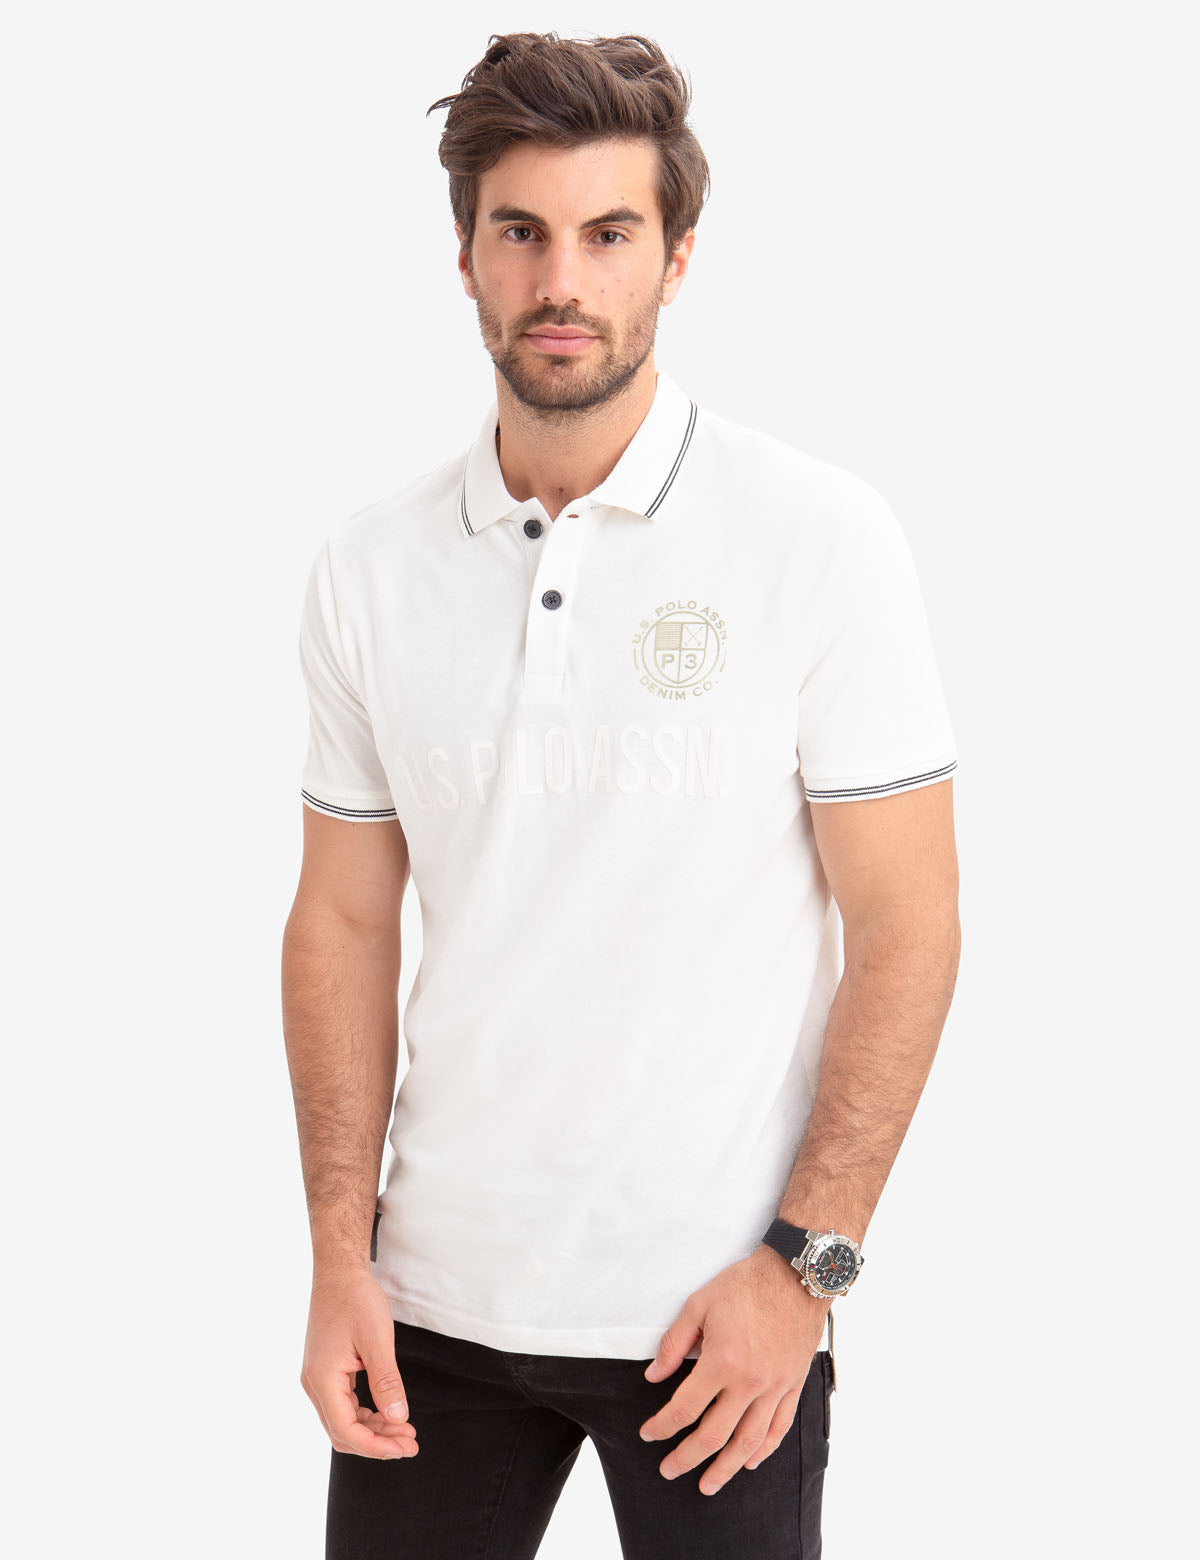 Metallic Print Polo Shirt - U.S. Polo Assn.